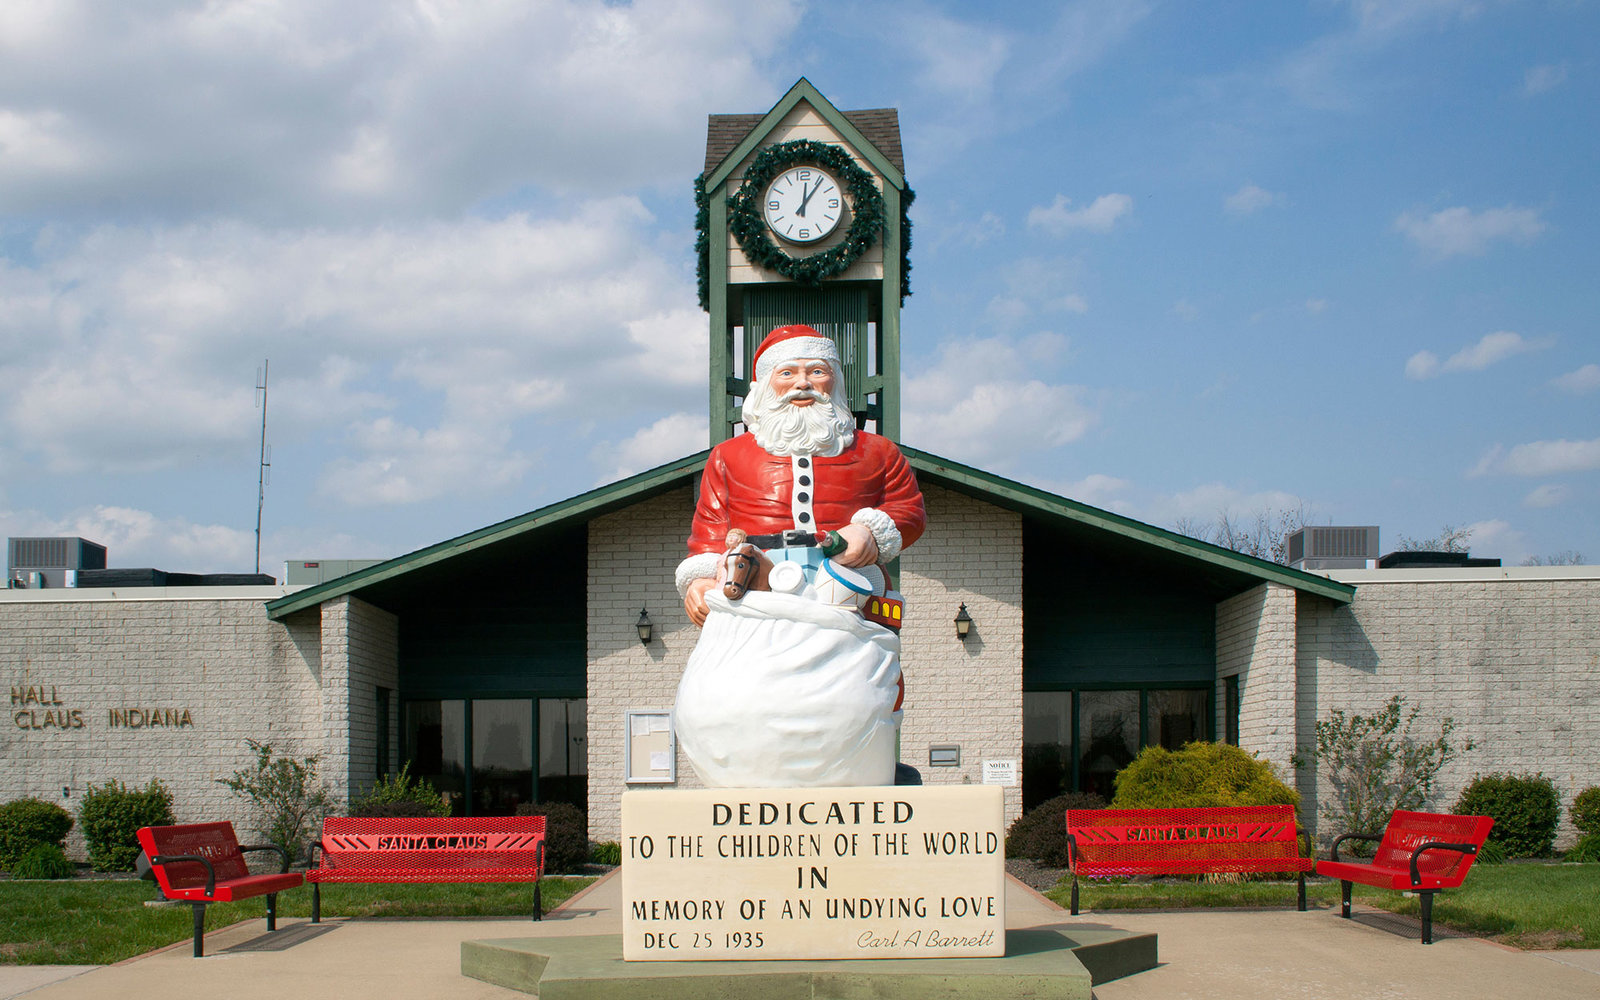 D8C34E Giant Santa statue at the Town Hall in Santa Claus Indiana